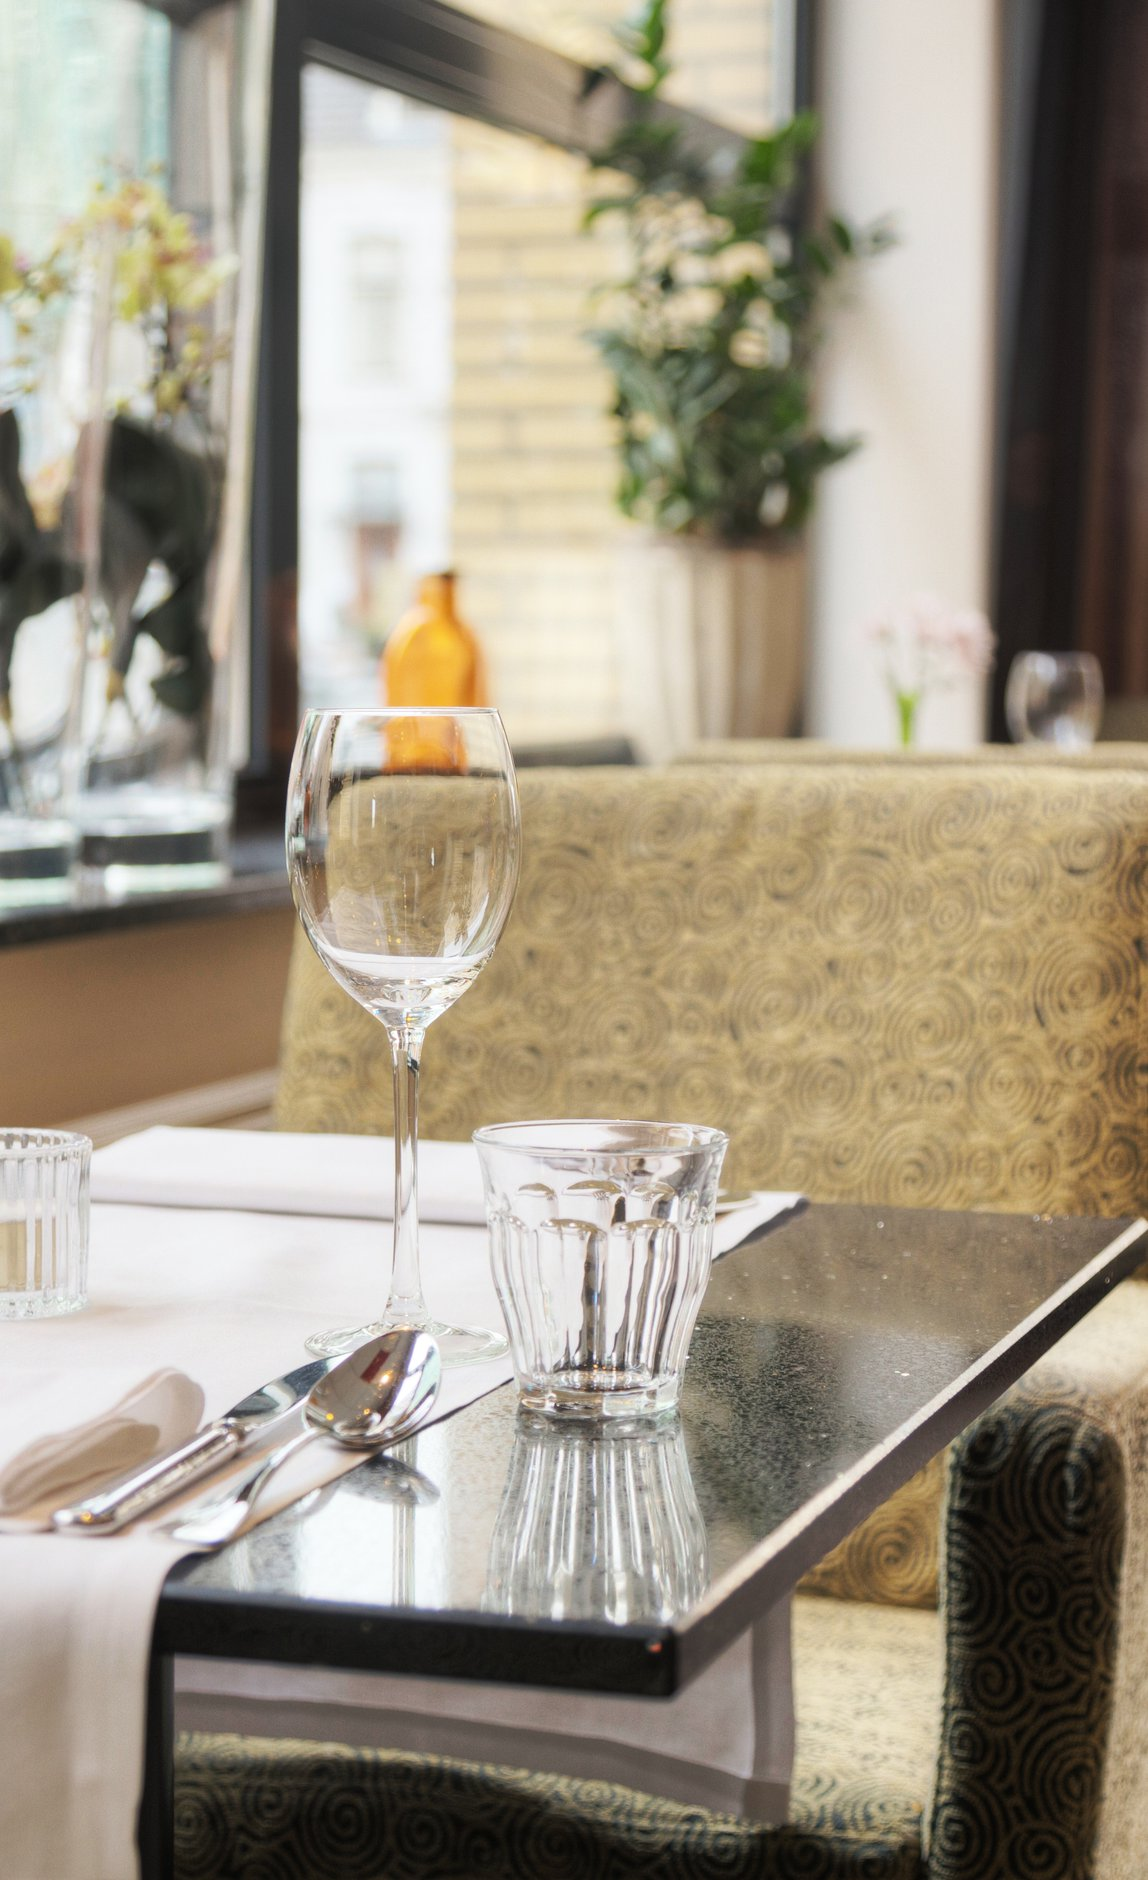 City Hotel Hengelo 4 In The Heart Of The City 10 Discount